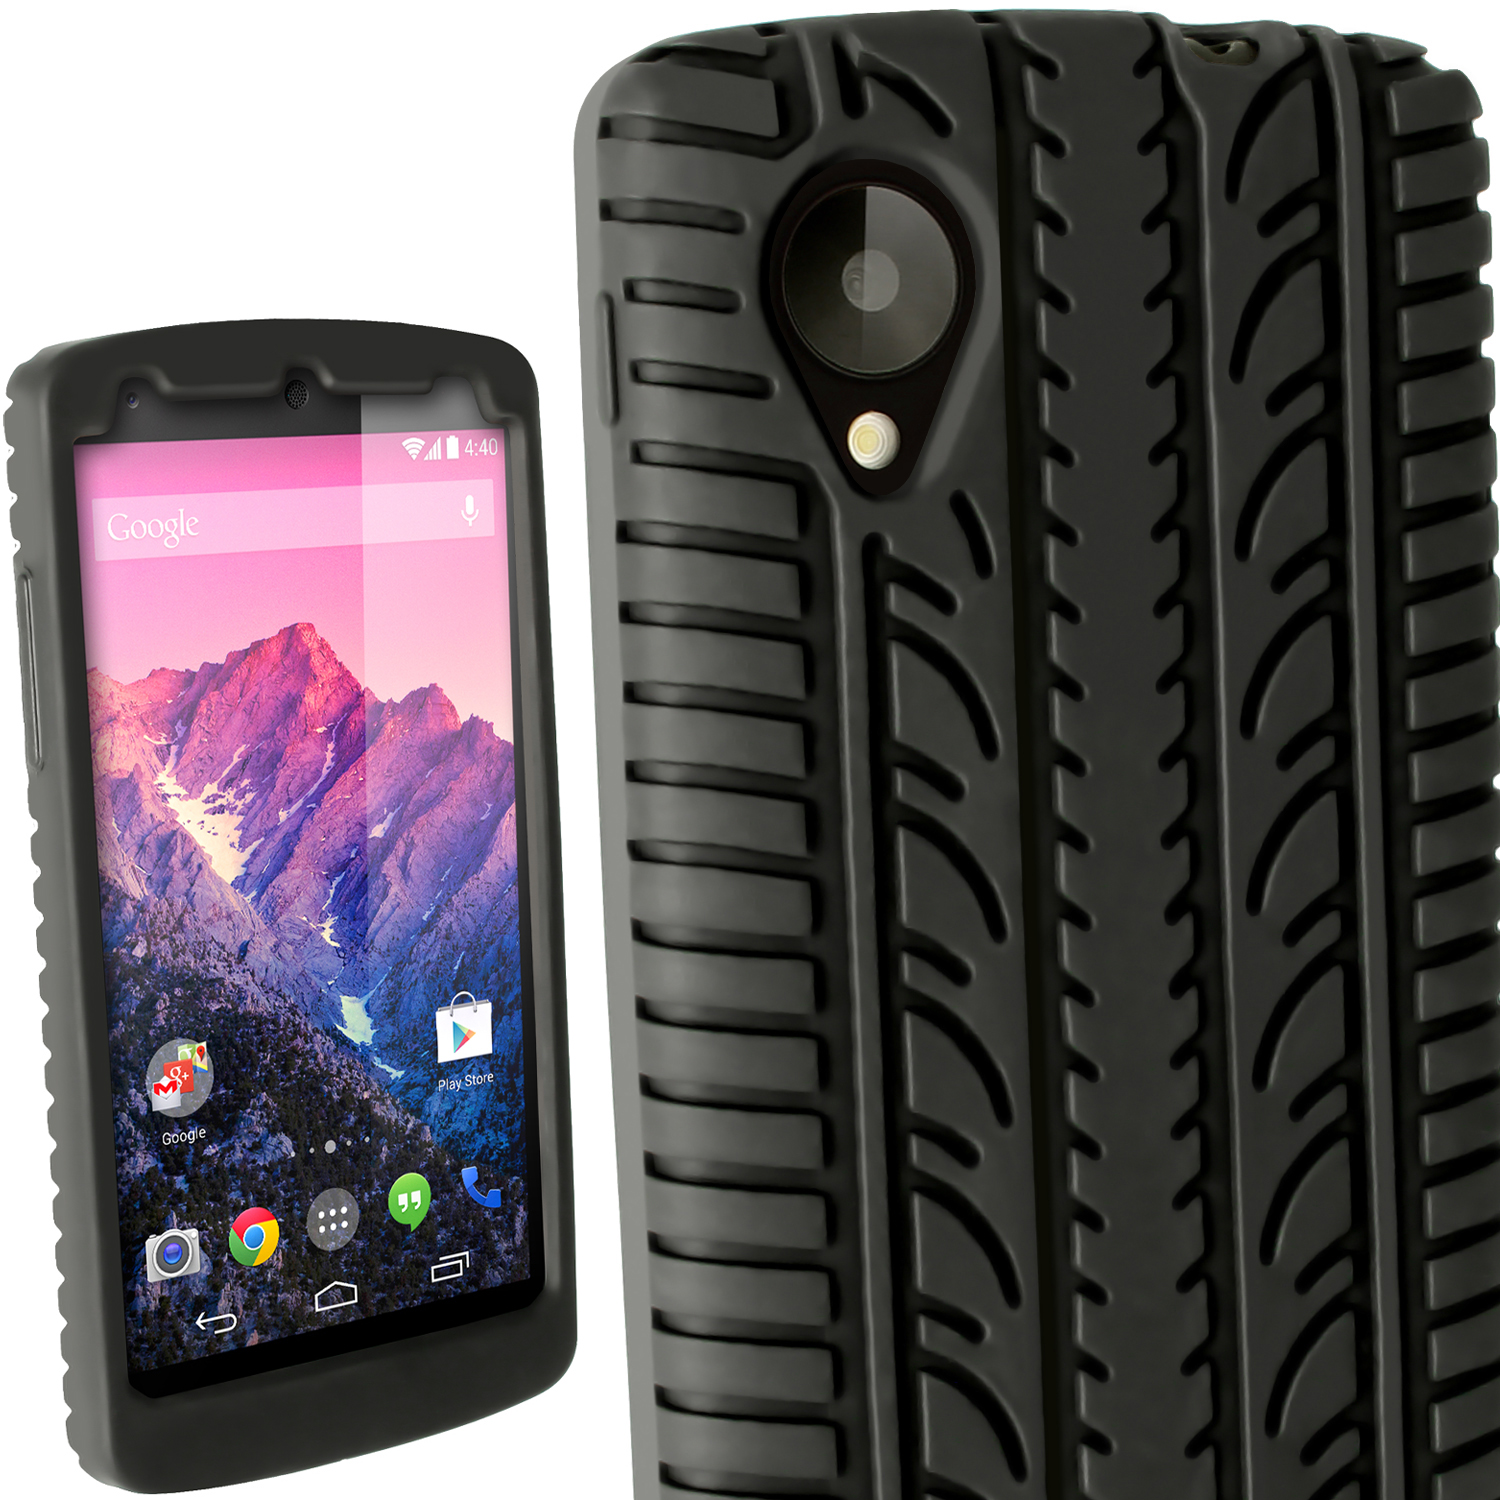 iGadgitz Black Silicone Skin Case Cover with Tyre Tread for LG Google Nexus 5 + Screen Protector